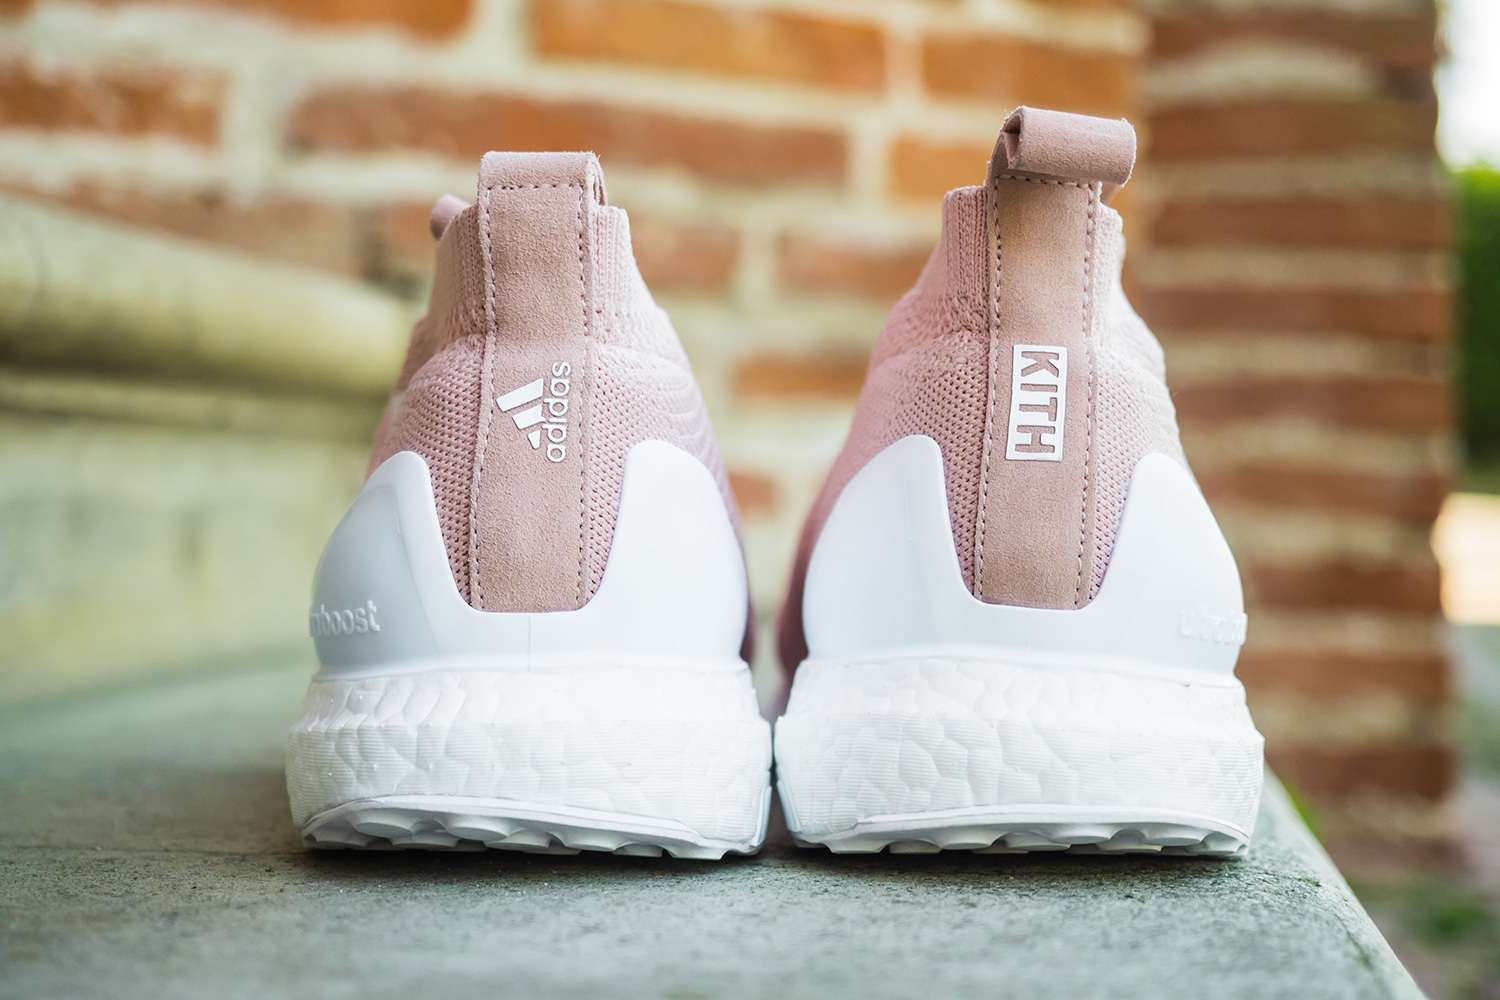 kith-adidas-ace-16-purecontrol-ultra-boost-04